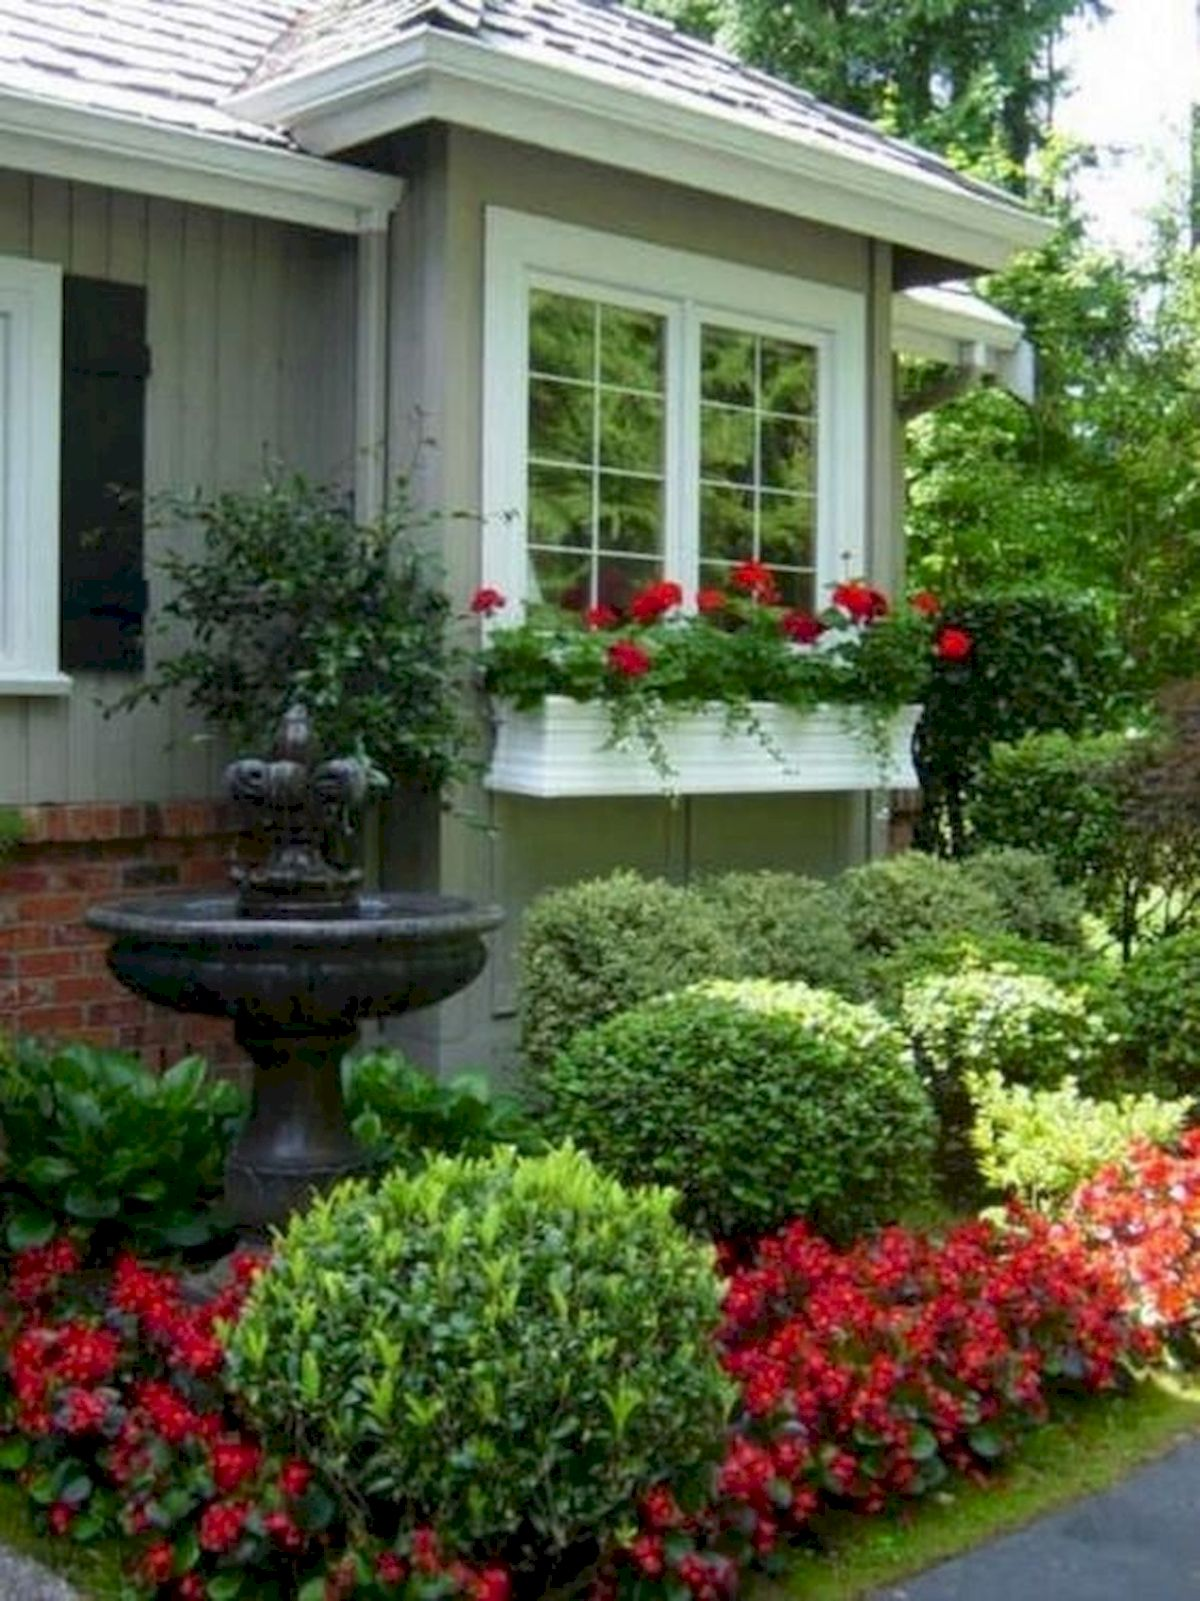 48 Stunning Front Yard Landscaping Ideas That Make Beautiful Garden (43)